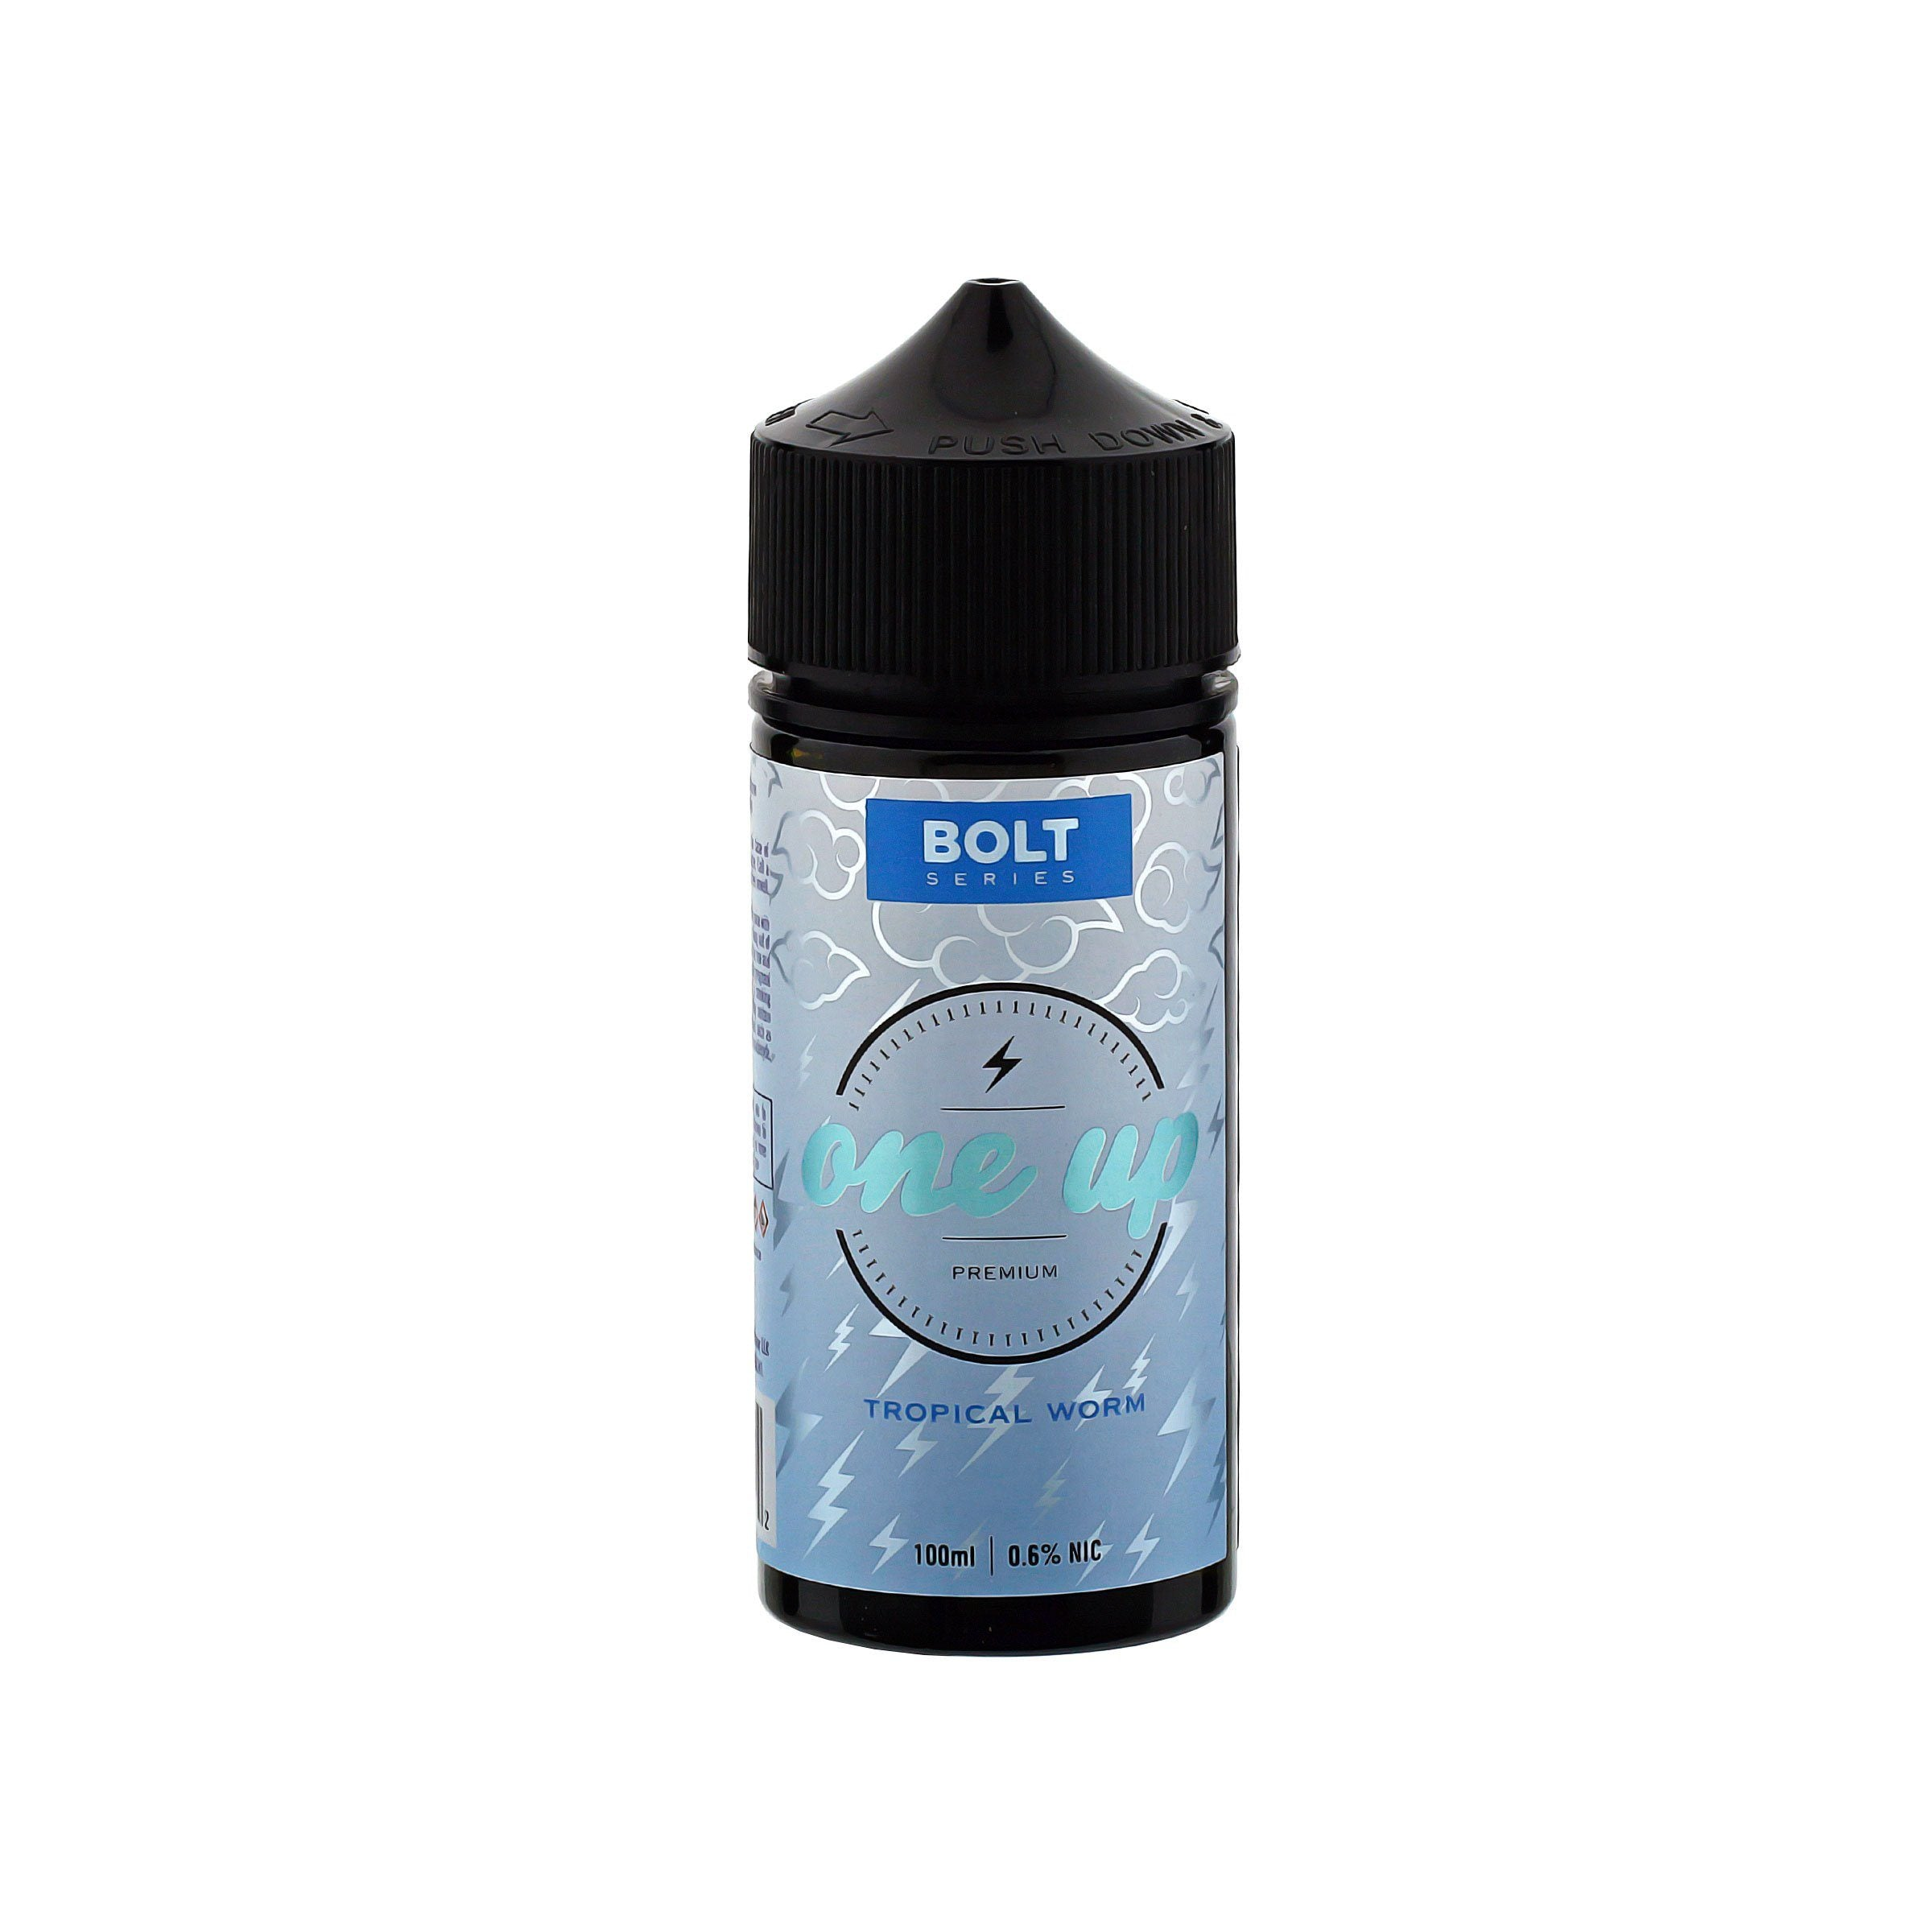 Bolt Series - Tropical Worm E-Juice by One Up Vapor Bottle